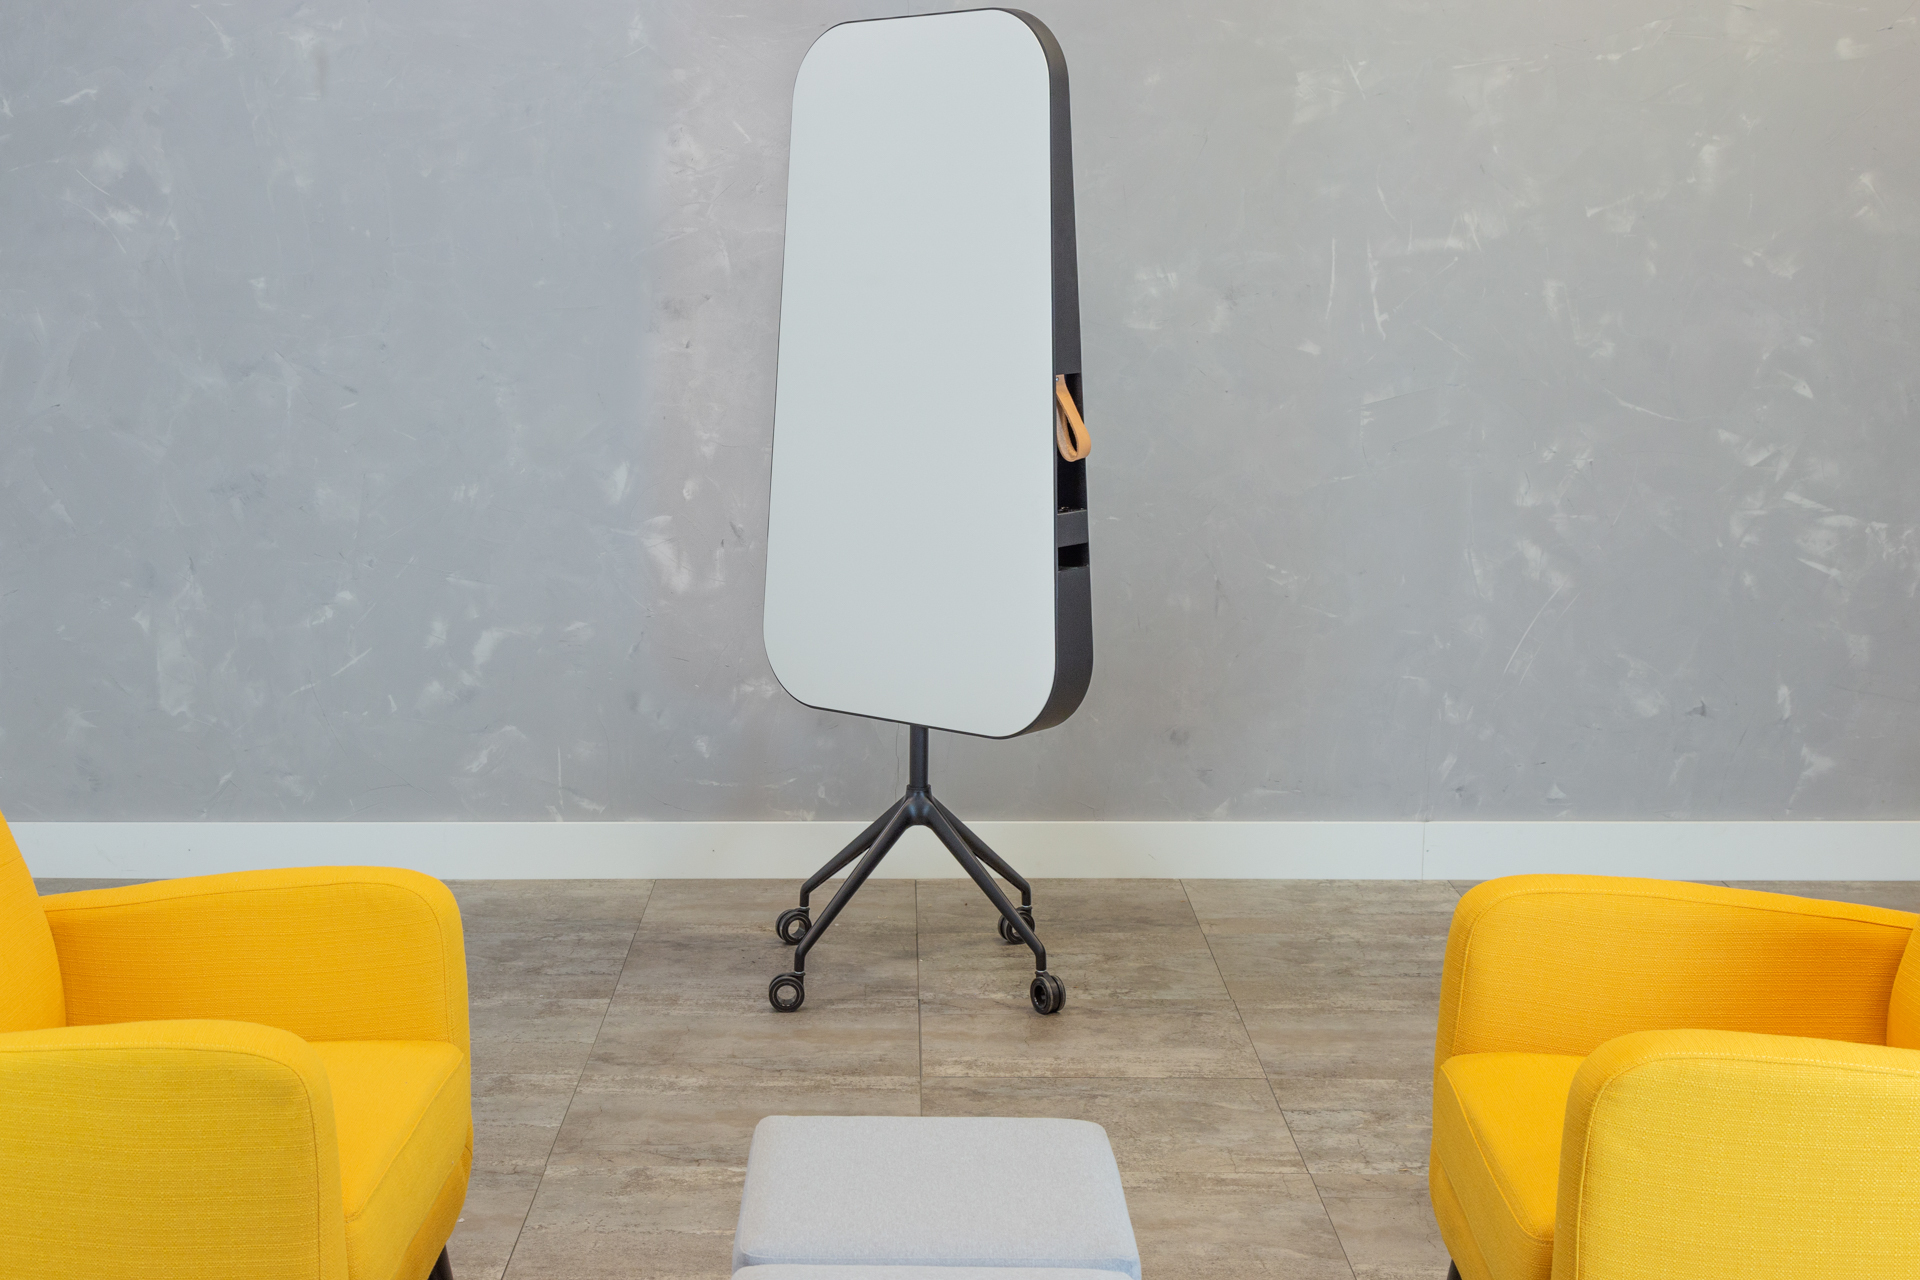 Pitch simply performs. Take it for a spin in the office and your note taking will never be the same! Drawing its name from the angled writing surface, it feels unique yet easy to jot notes on this mobile whiteboard. Pitch is customizable by surface, frame, caster and size. Got another idea for customization? Try us!